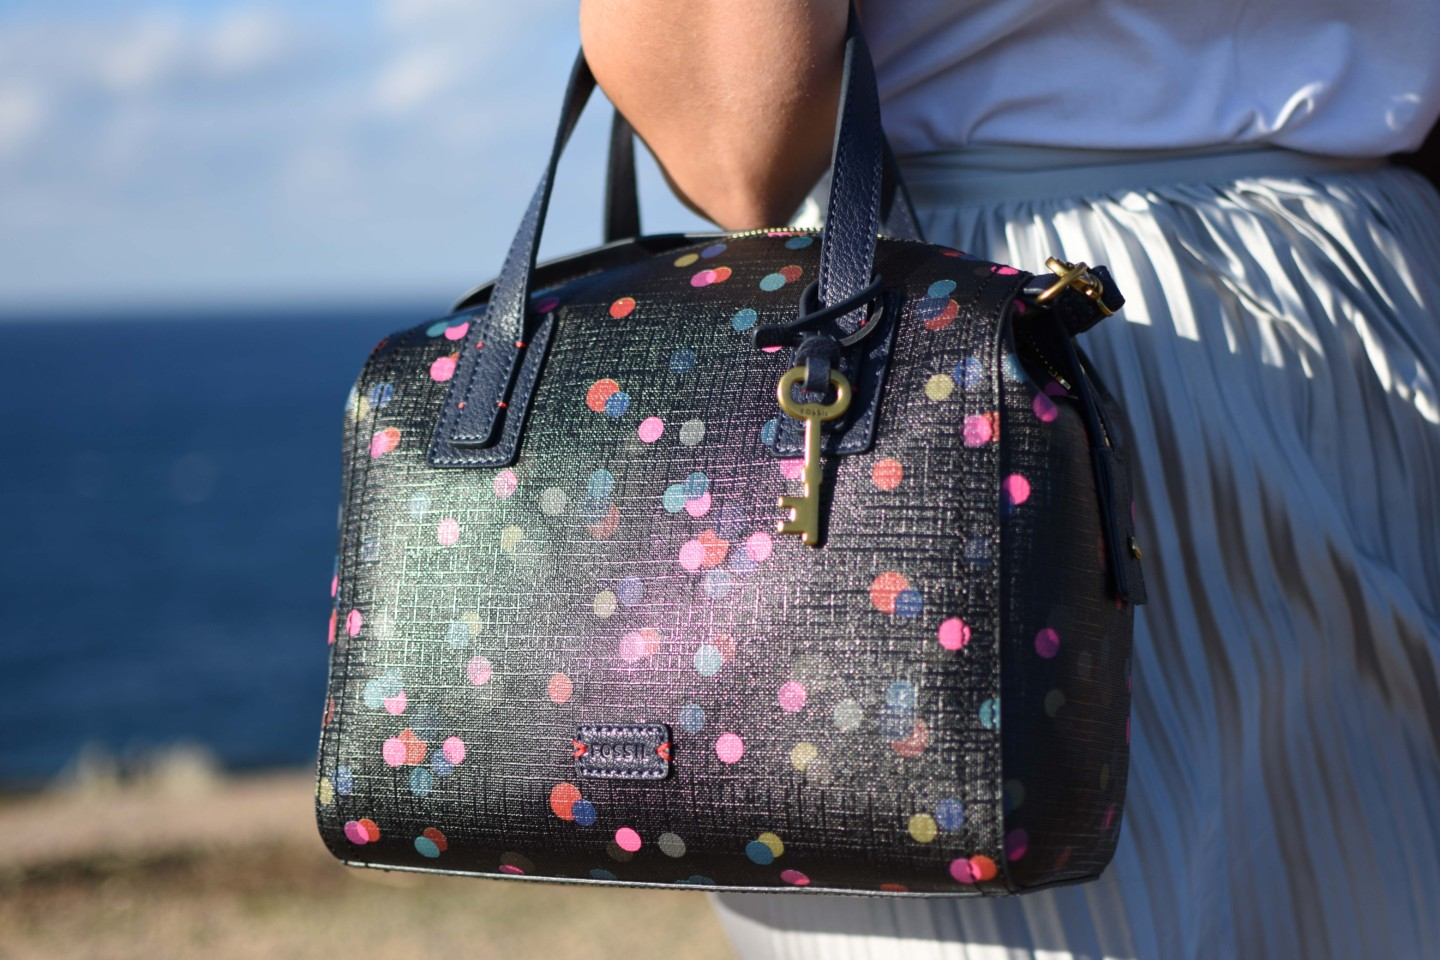 corsica-gonna-argento-lunga-must-have-travel-outfit-street-style-valentina-coco-fossil-bag